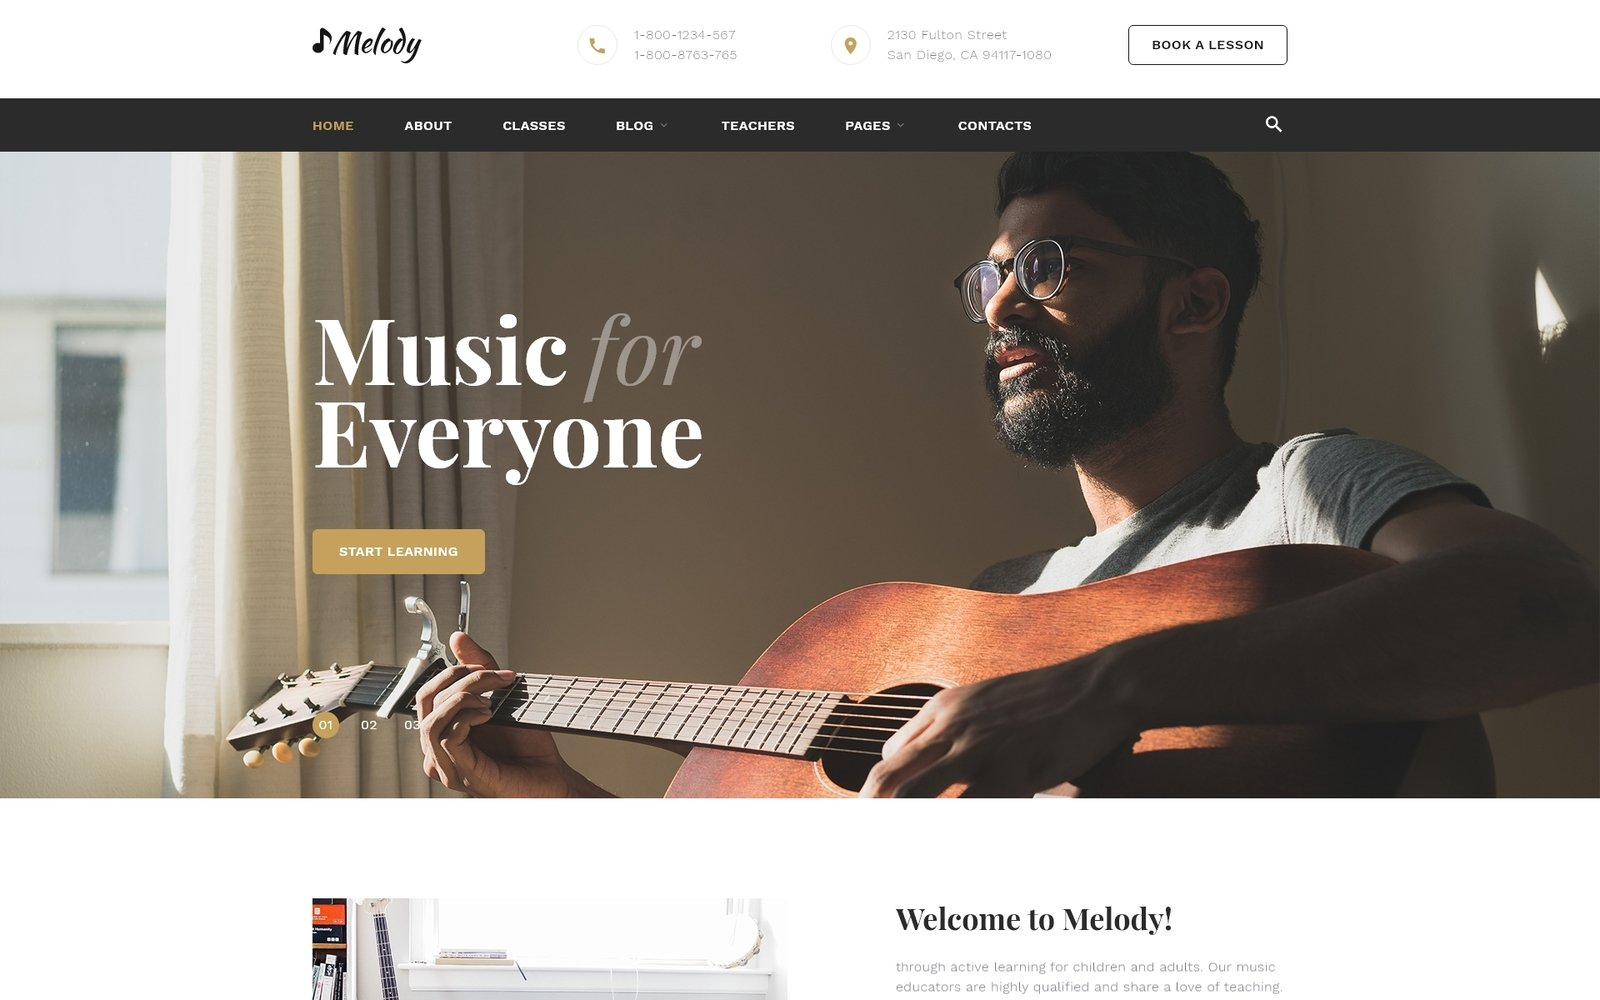 The Music School Responsive Javascript Animated Design 53334, one of the best website templates of its kind (education, most popular), also known as music school website template, lessons website template, education website template, knowledge website template, students website template, teachers website template, courses website template, violin website template, cello website template, piano website template, guitar website template, jazz website template, treble website template, clef website template, strings website template, director website template, history website template, children website template, masters website template, talented website template, tunes website template, melodies website template, alumni website template, library website template, collection website template, symphony website template, concert website template, facilities website template, hall career and related with music school, lessons, education, knowledge, students, teachers, courses, violin, cello, piano, guitar, jazz, treble, clef, strings, director, history, children, masters, talented, tunes, melodies, alumni, library, collection, symphony, concert, facilities, hall career, etc.